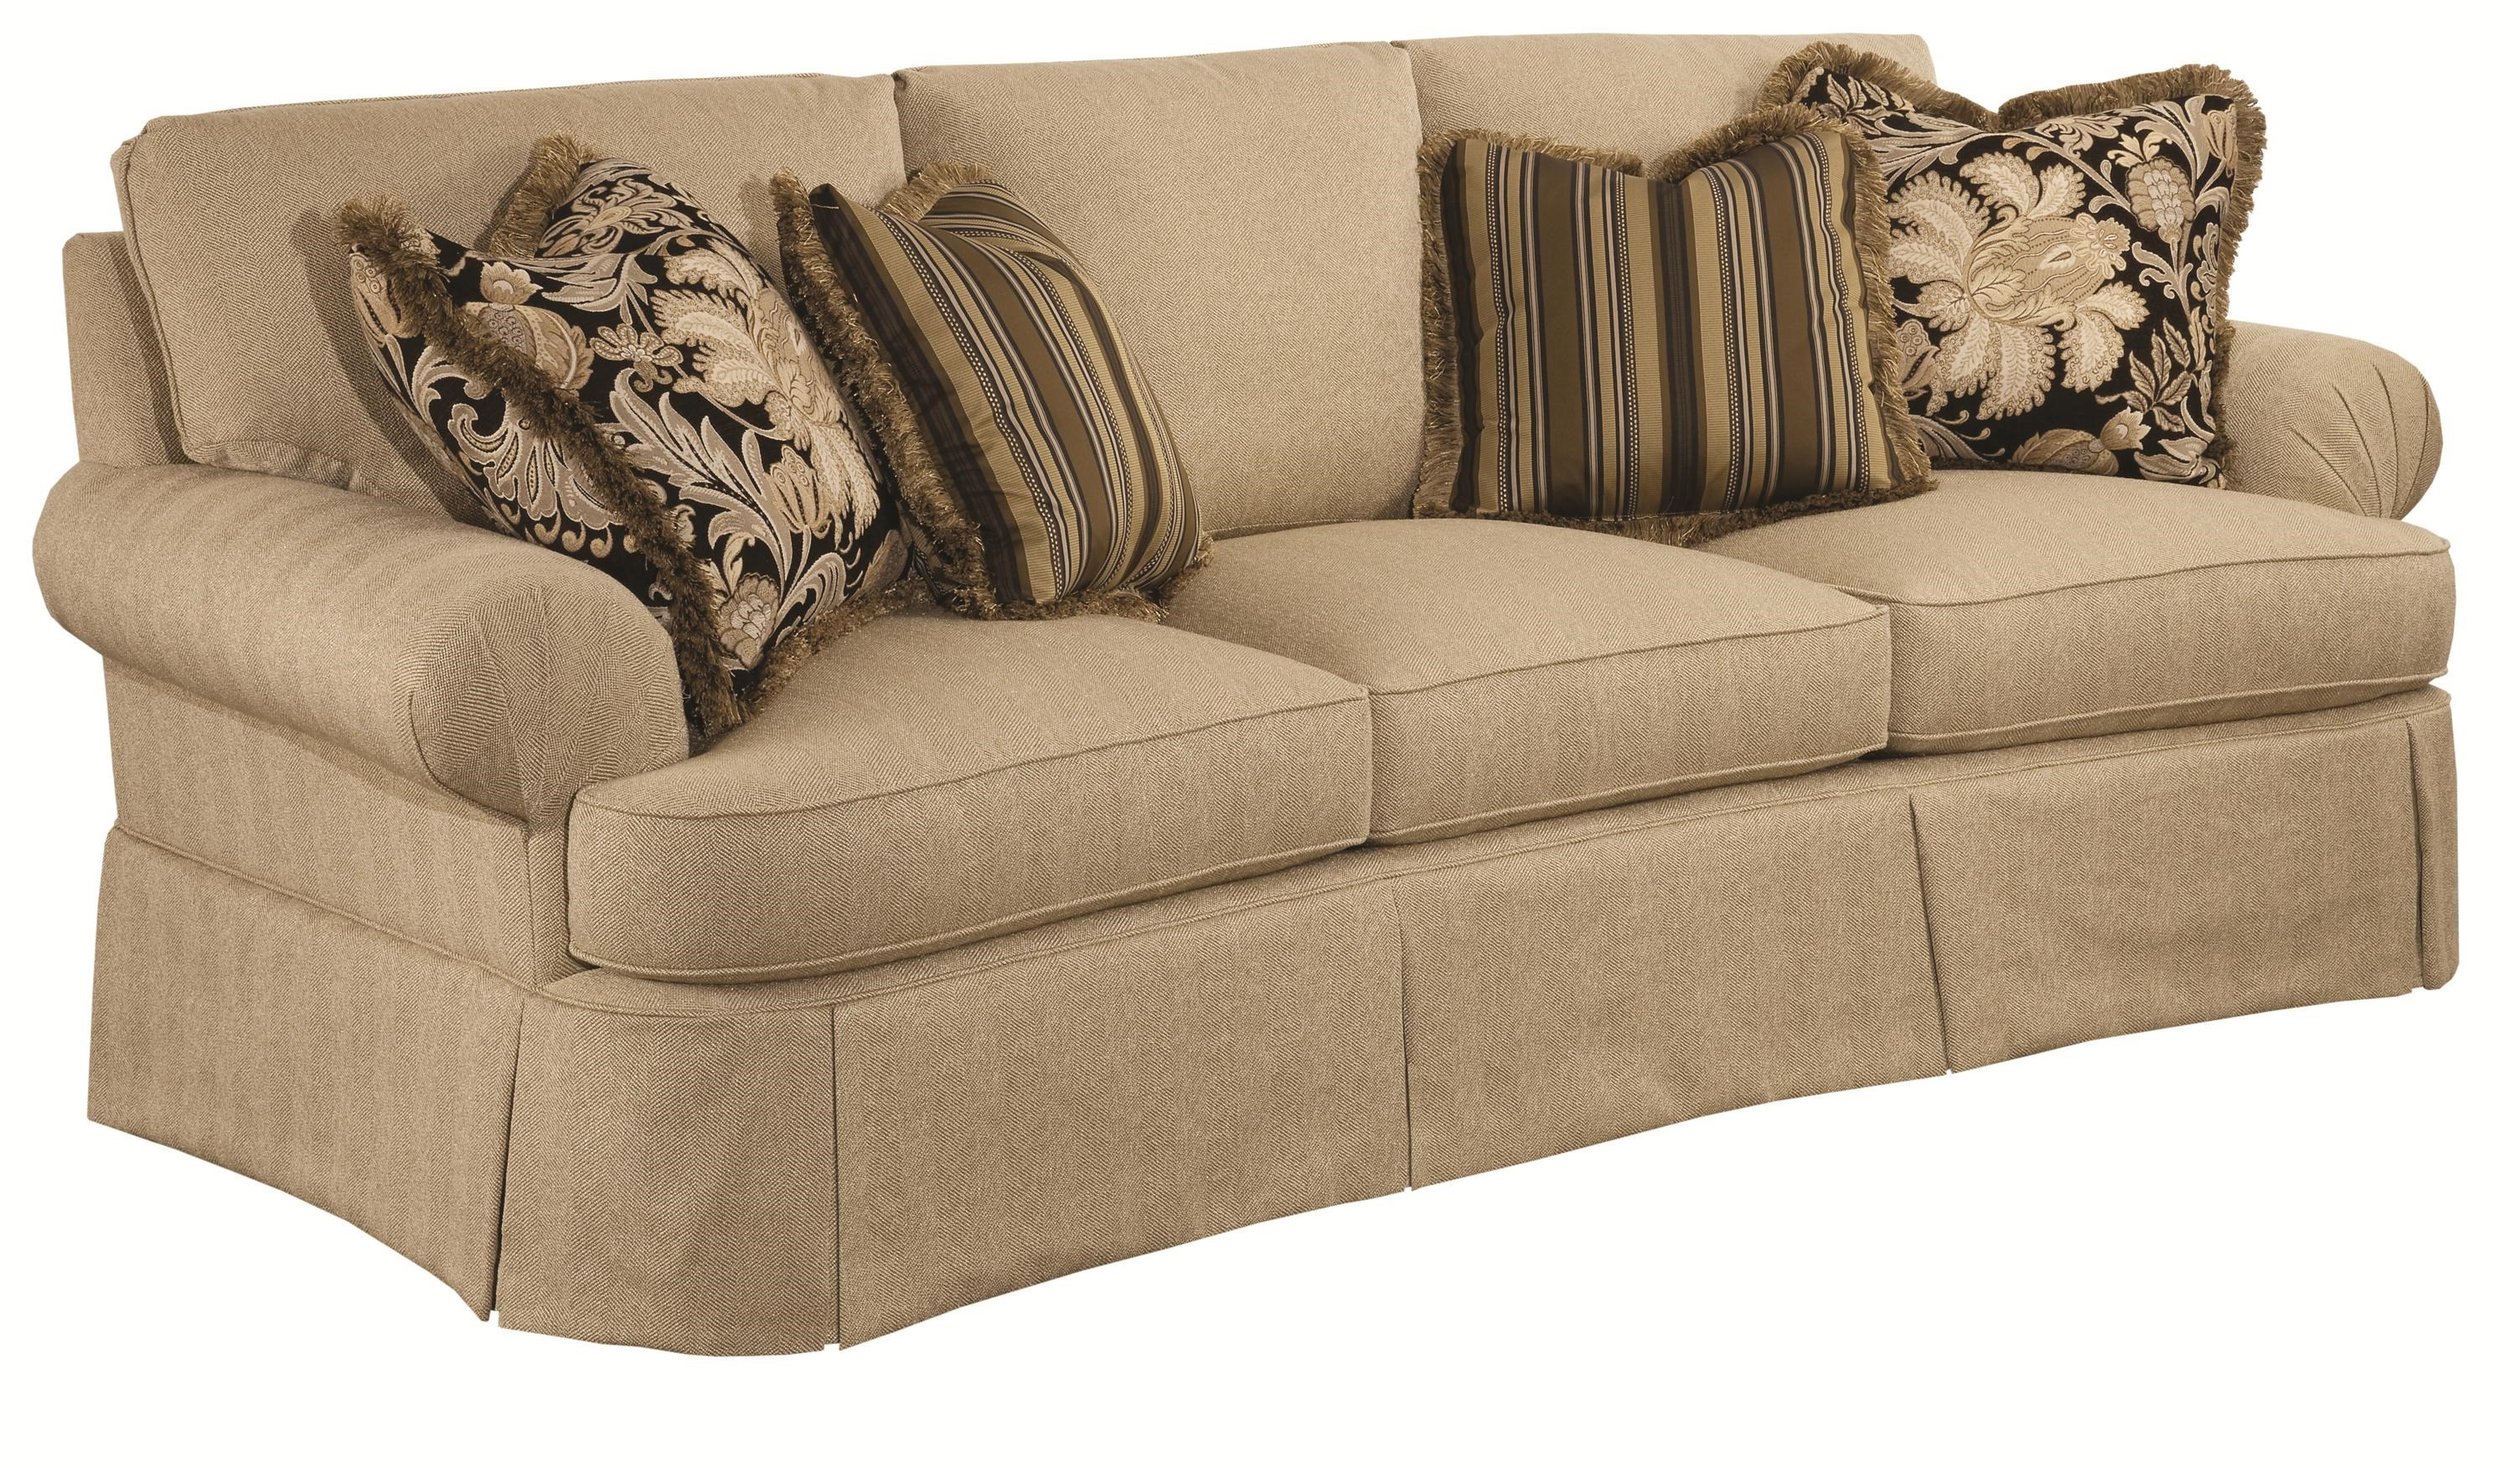 Merveilleux Kincaid Furniture DanburyConversation Sofa